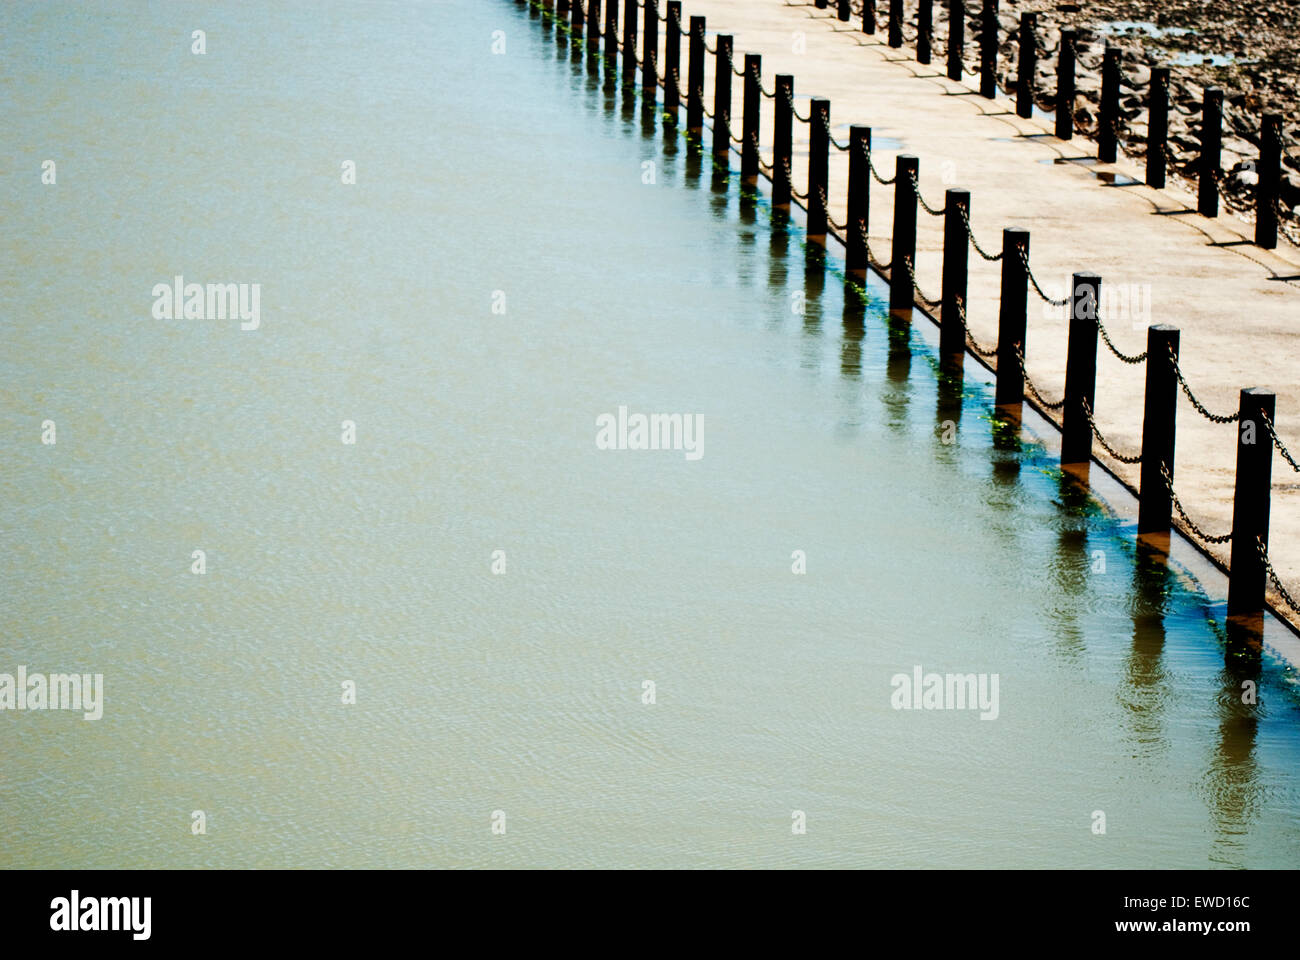 Abstract image of water and walkway near to Knightstone Island in Weston Super-Mare - Stock Image